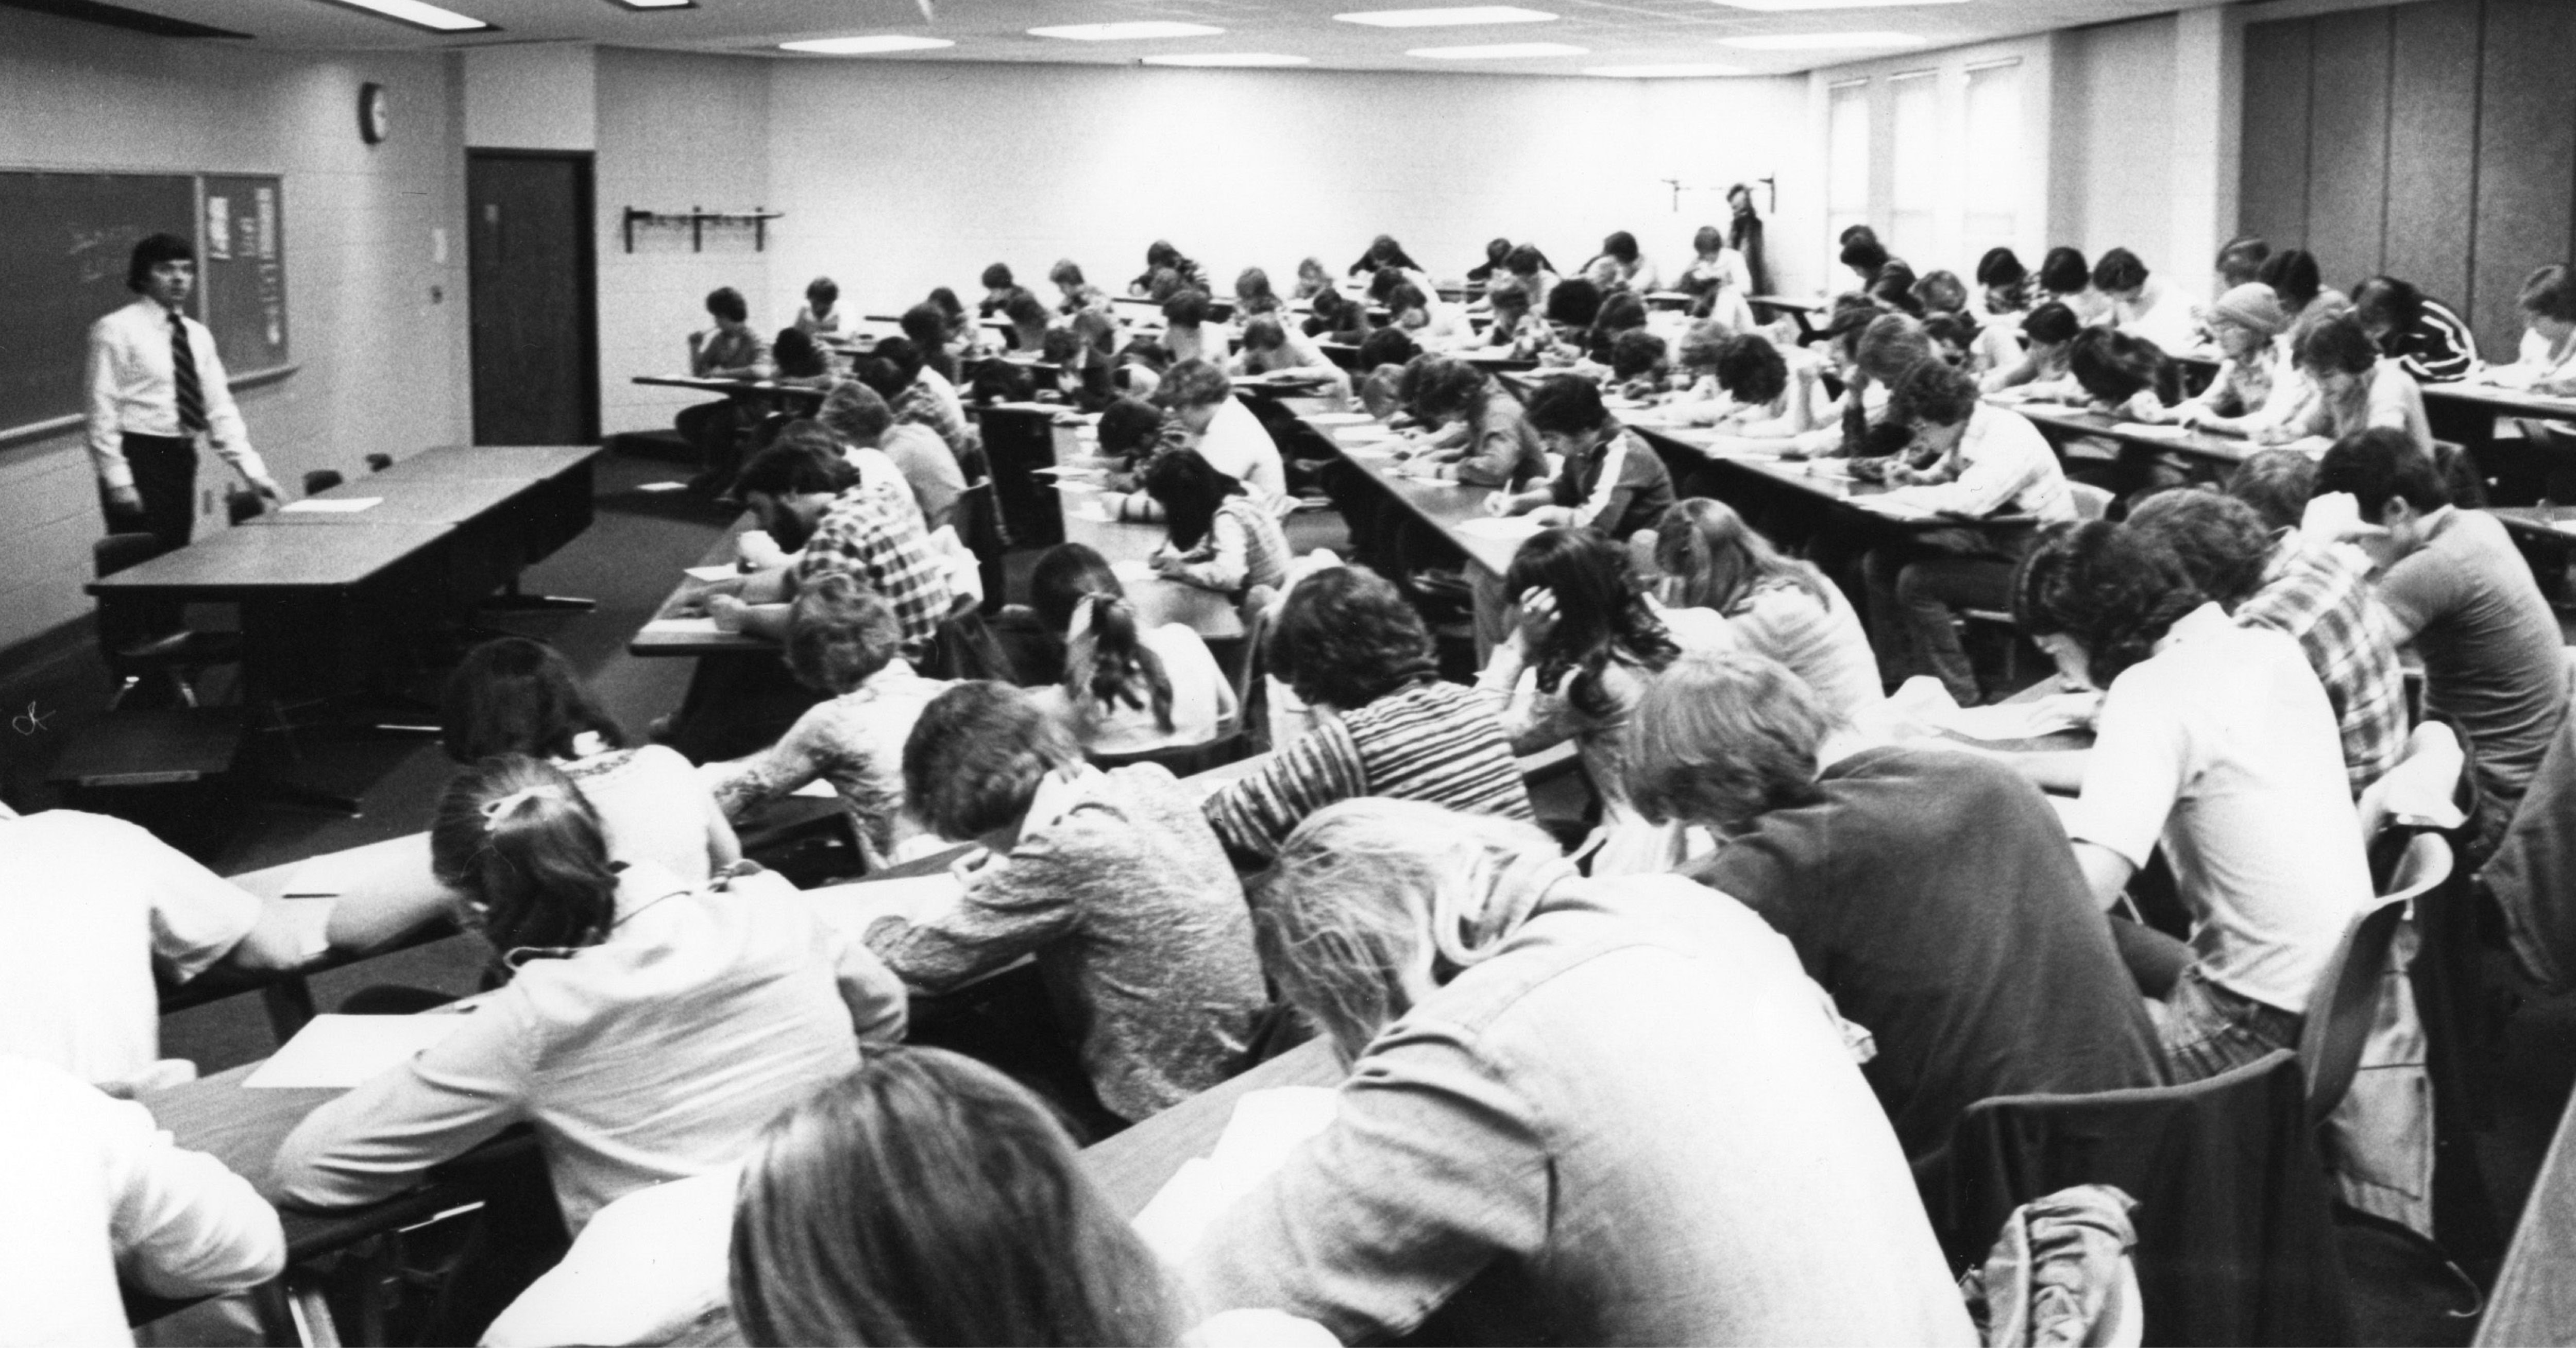 This image shows a class taught in the College of Business at Appalachian State University (1967-current) in the 1970s. A professor can be seen standing behind a desk on the left and students can be seen sitting at desks, writing, on the right. The Colleg